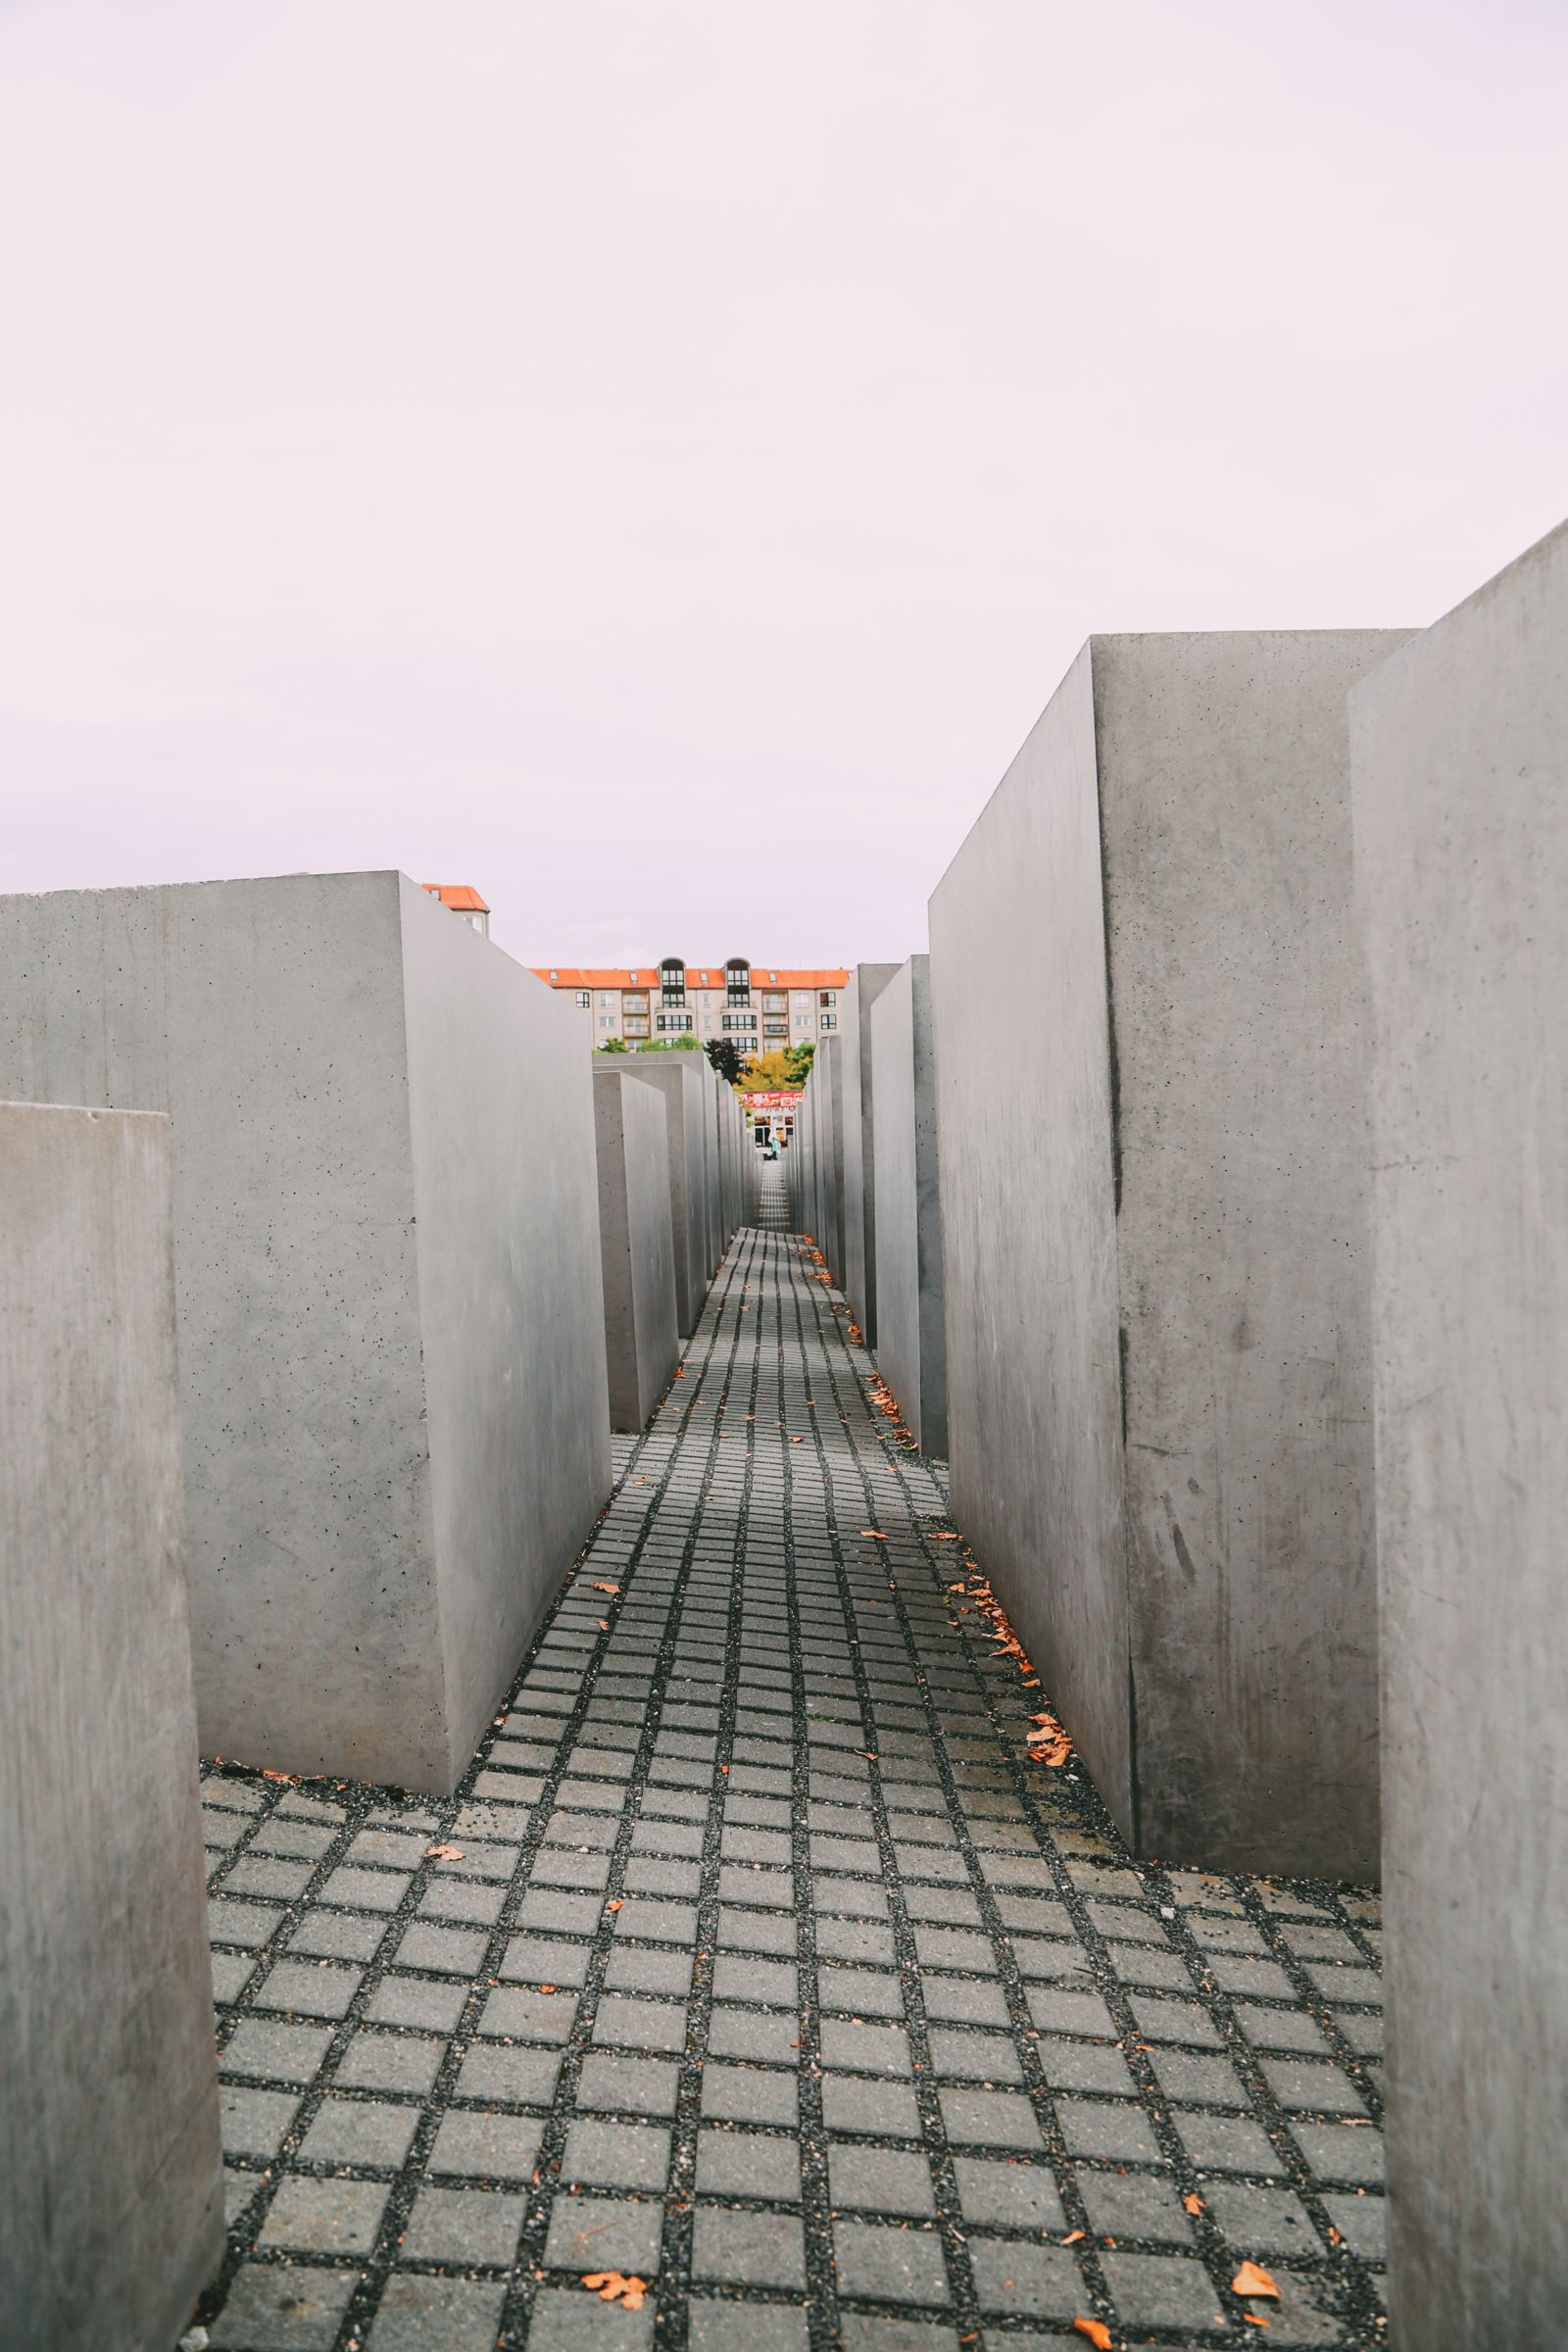 A Memoir To The Fallen - The Holocaust Memorial Also known as the Memorial to the Murdered Jews of Europe (1)